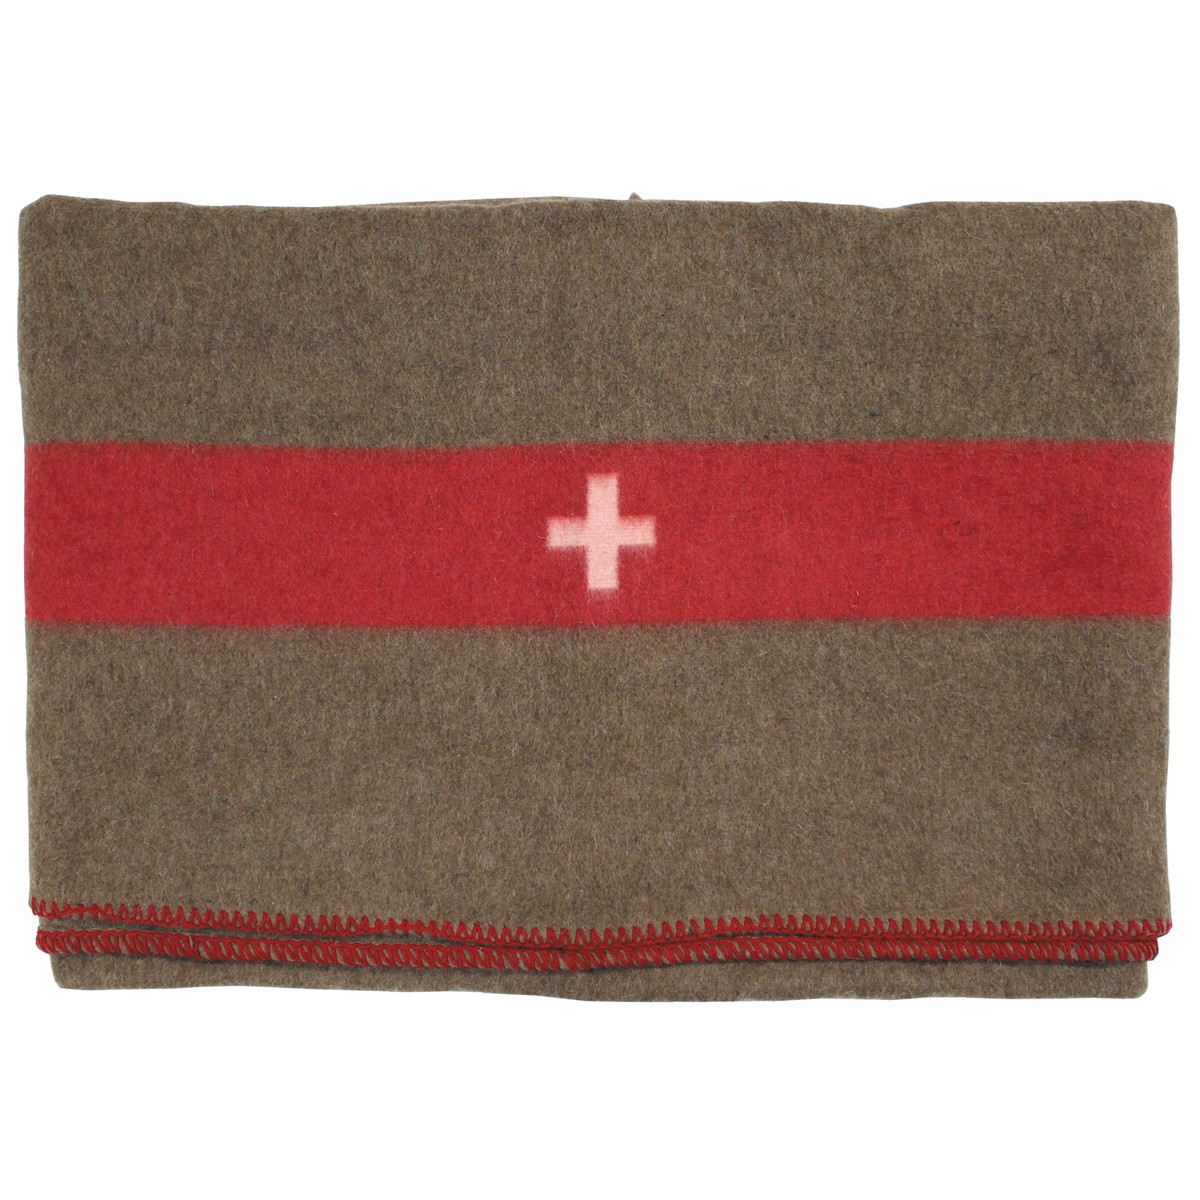 High Quality WW2 Swiss/German Army Wool Military Blanket 200x150cm - Repro